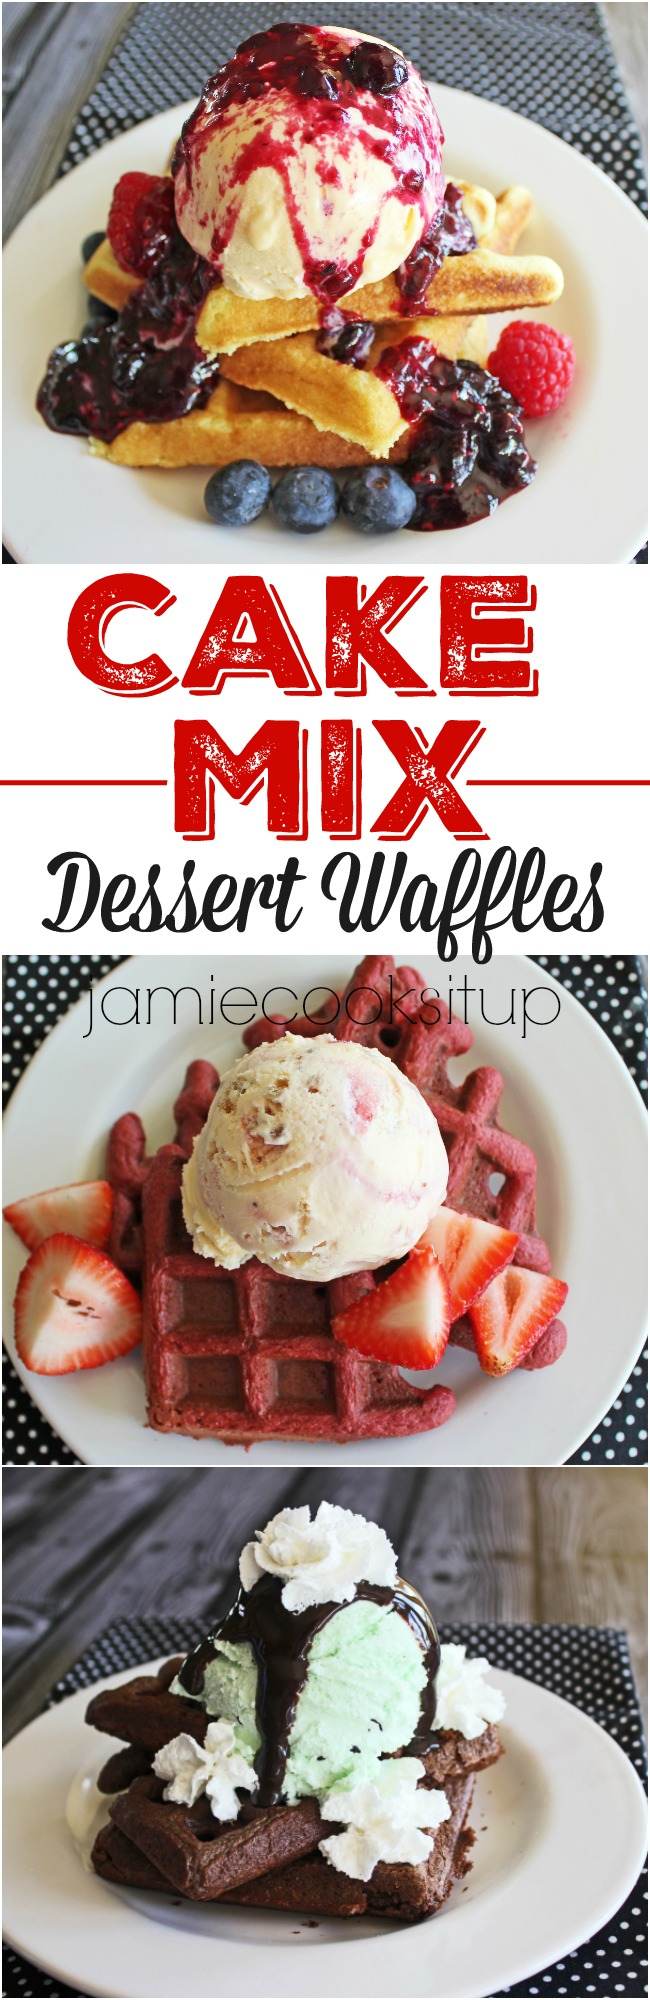 Cake Mix Dessert Waffles from Jamie Cooks It Up!